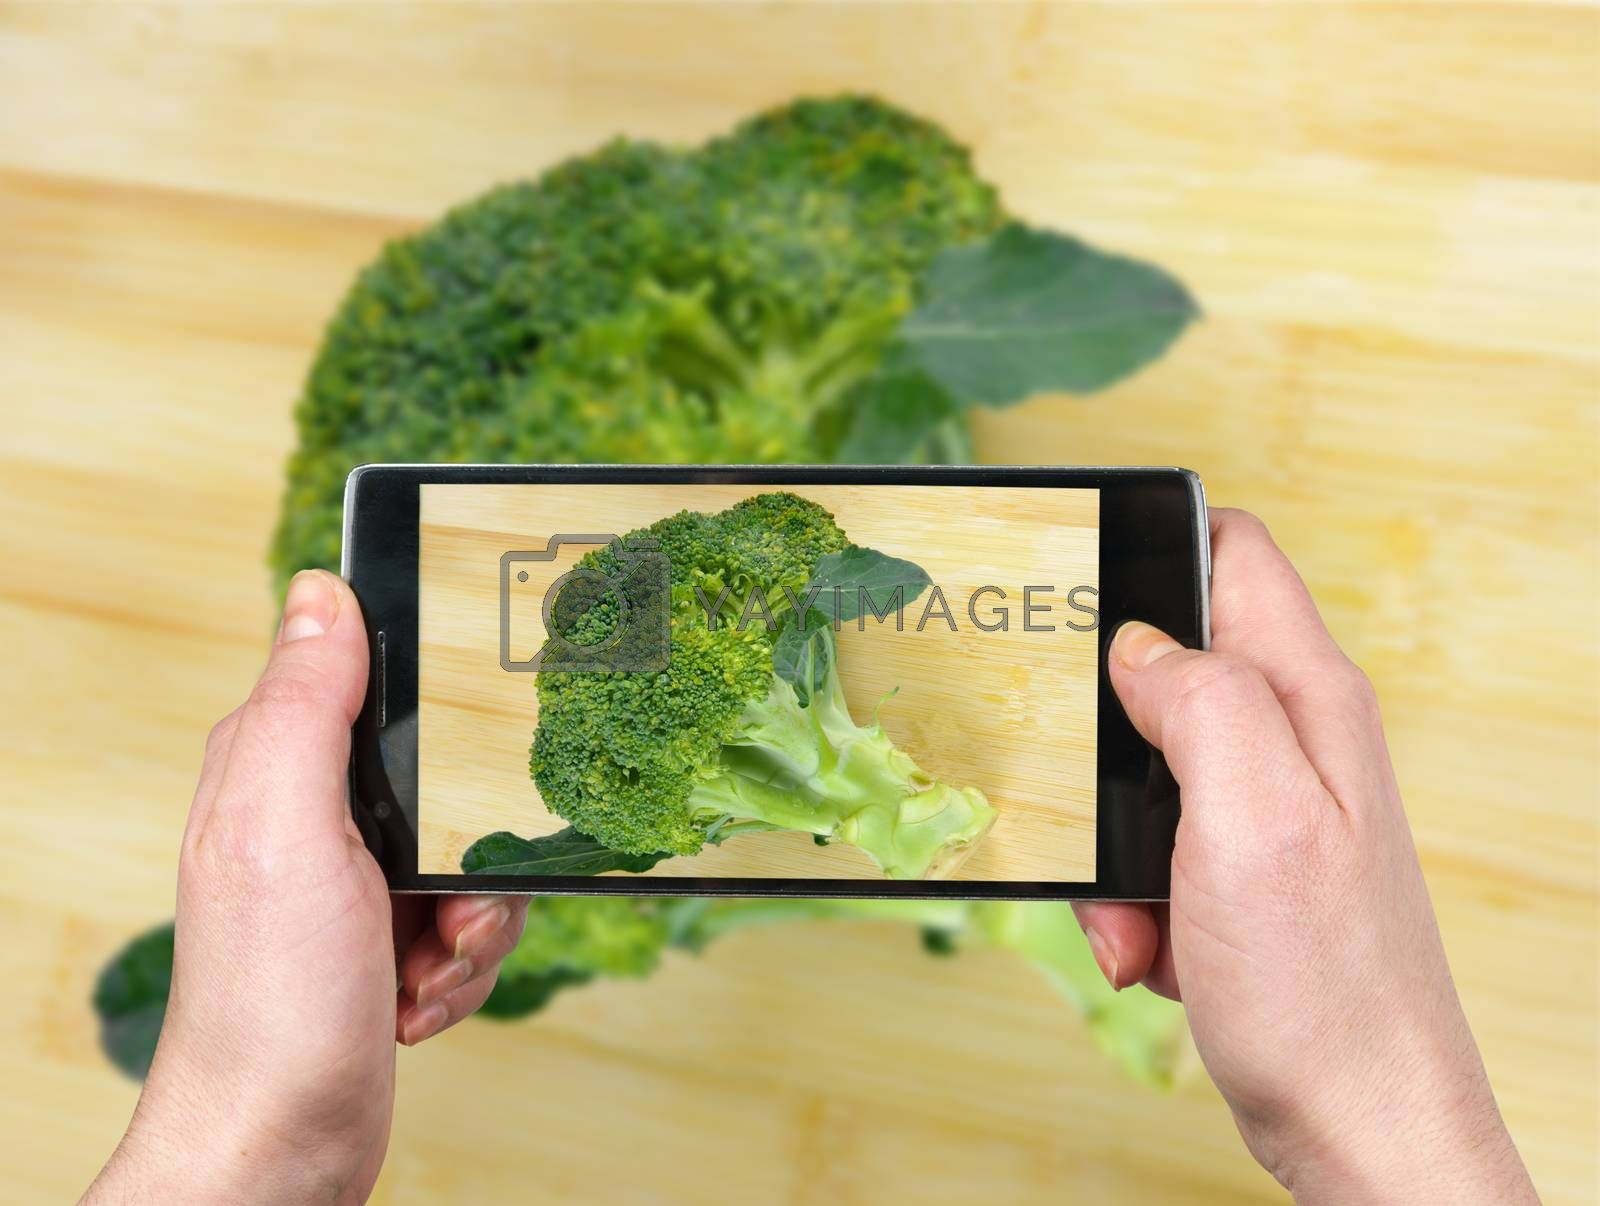 Taking picture with the phone. Brocolli